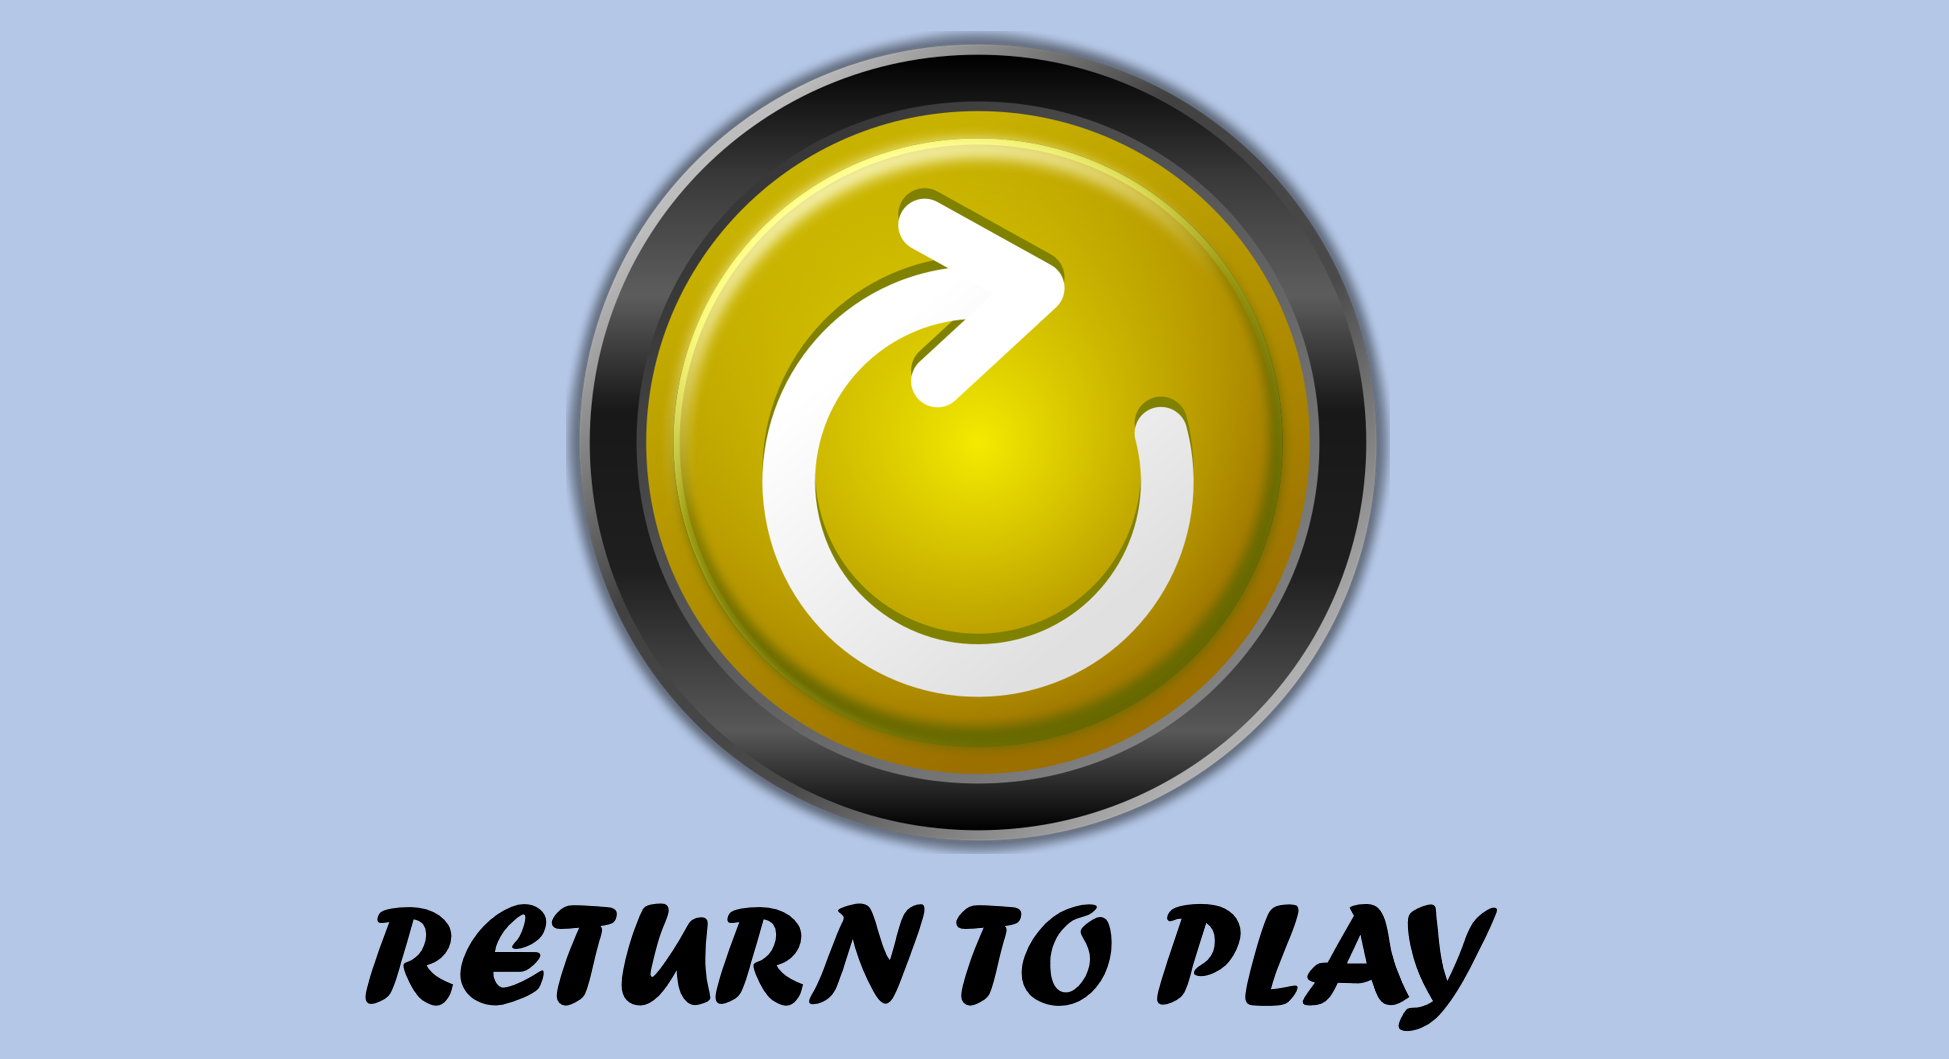 RETURNTOPLAY